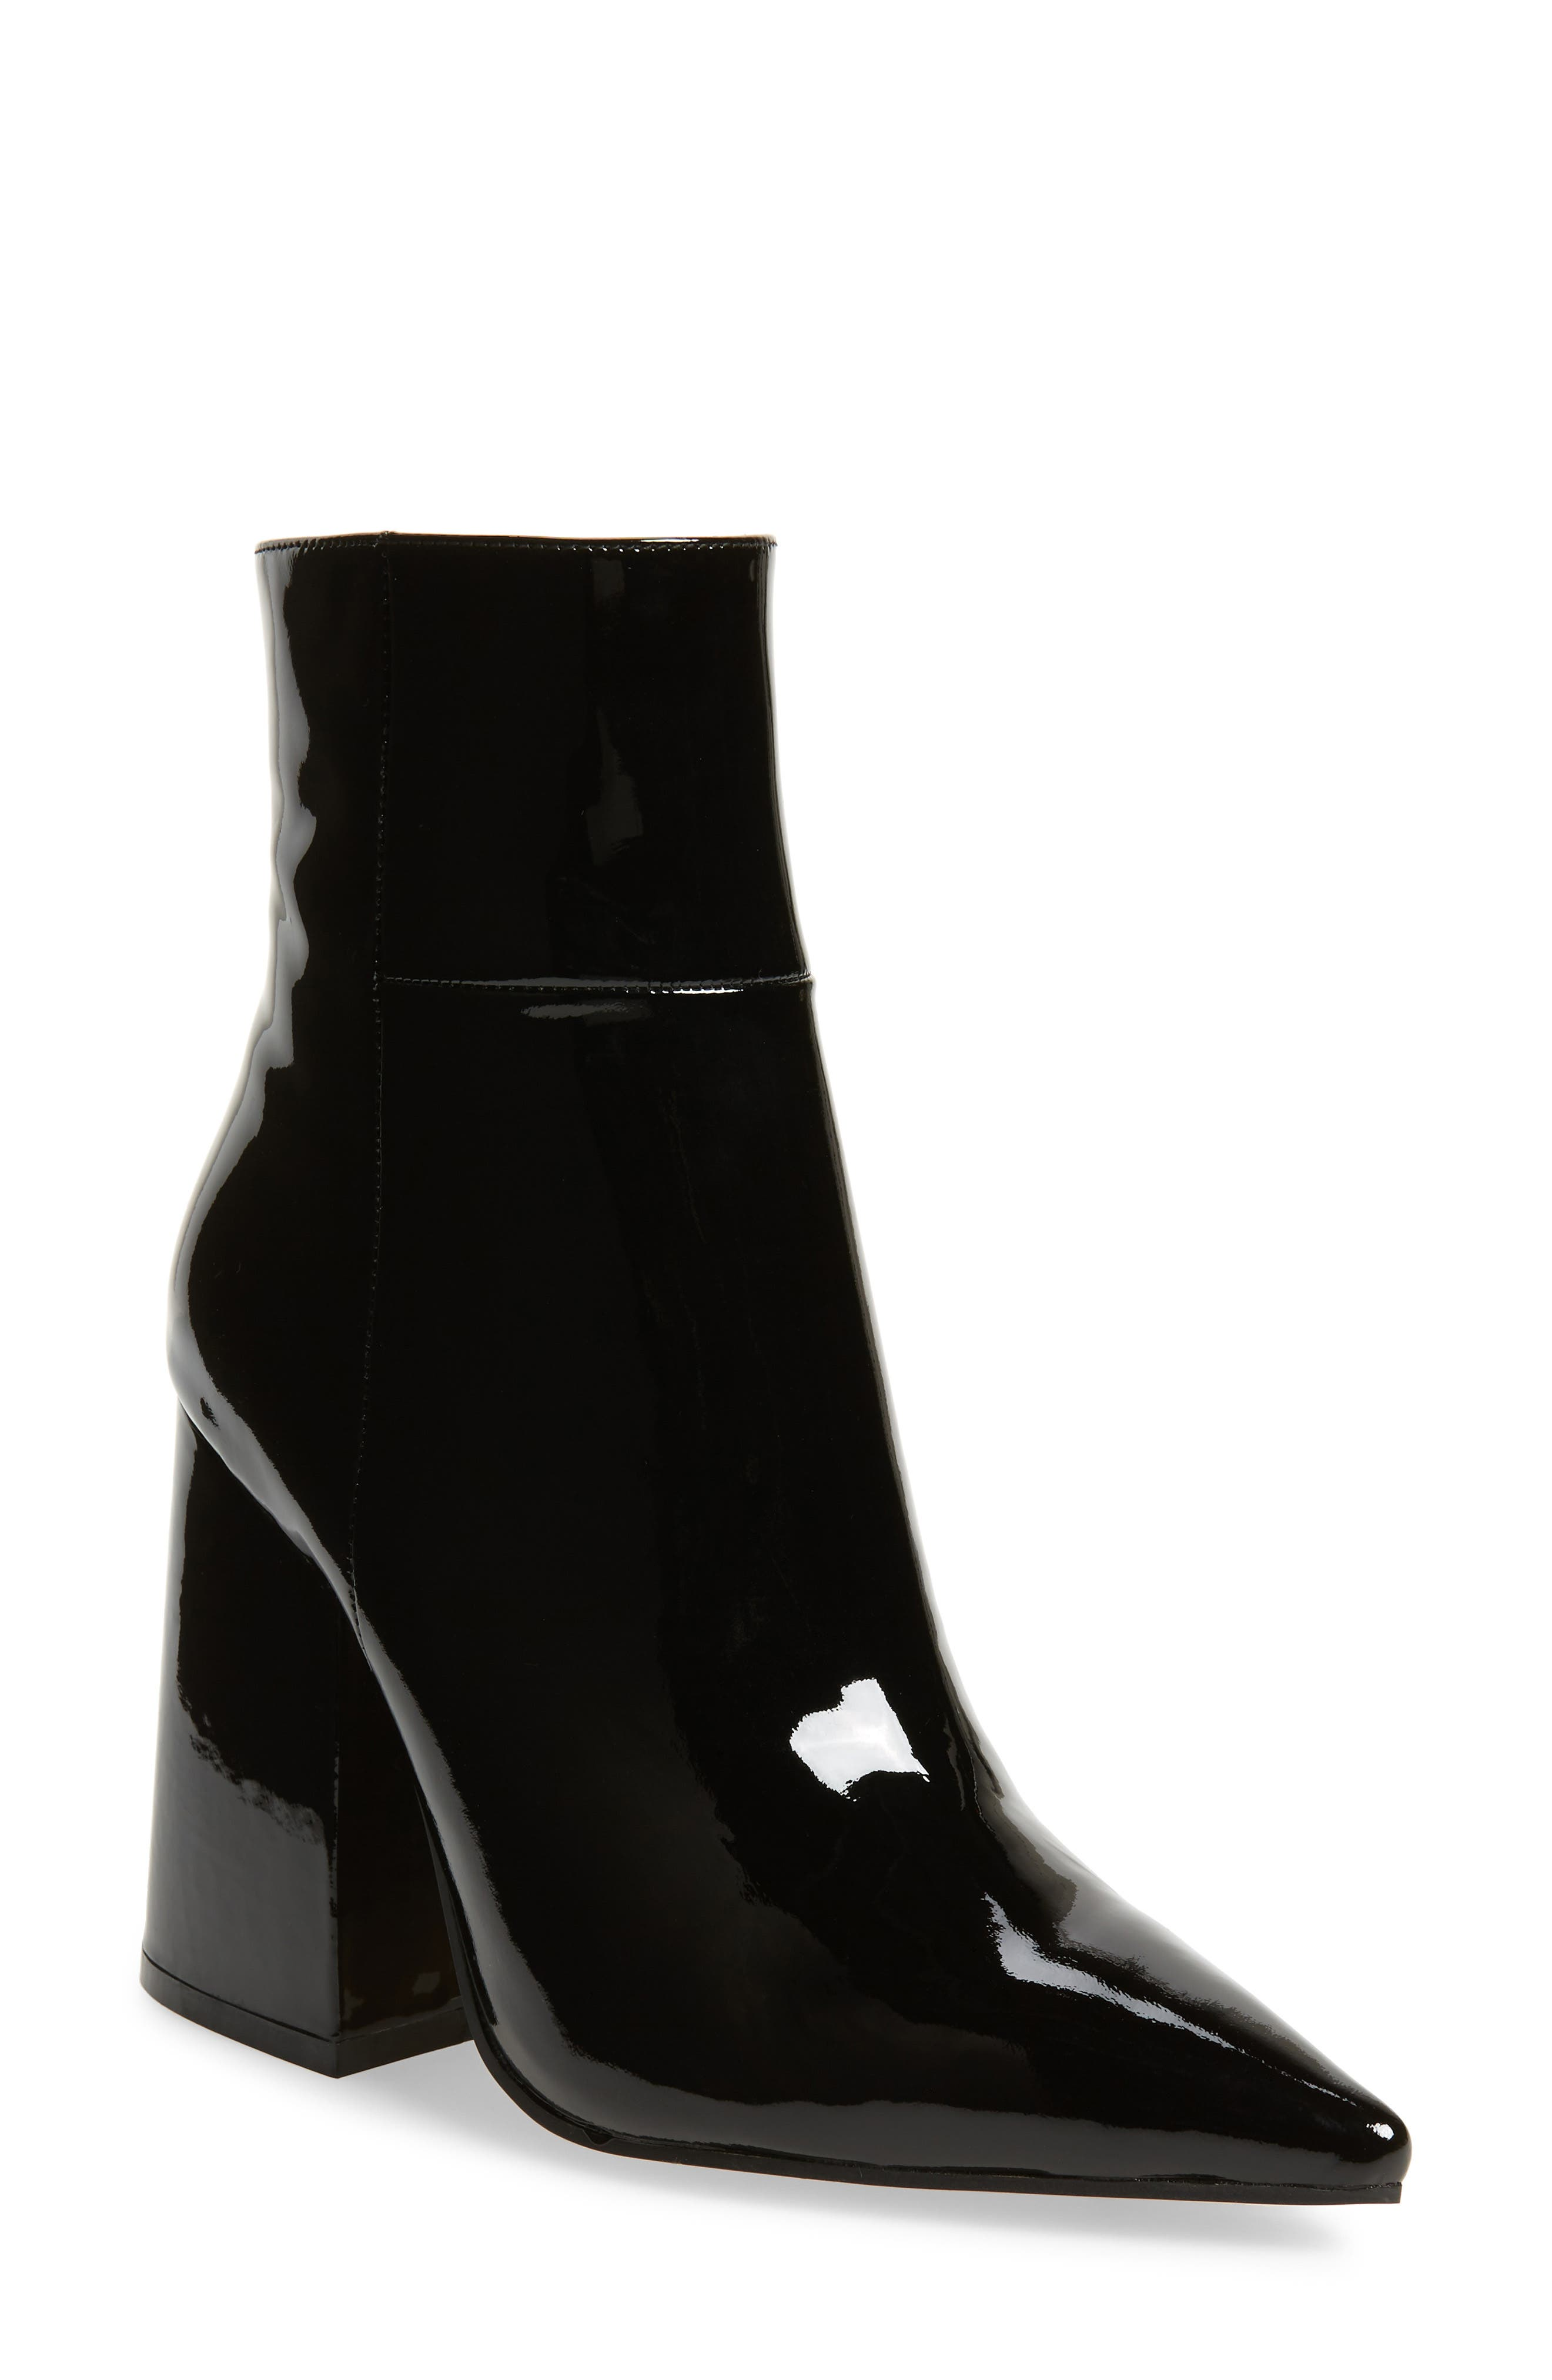 ALIAS MAE Ahara Bootie in Black Patent Leather